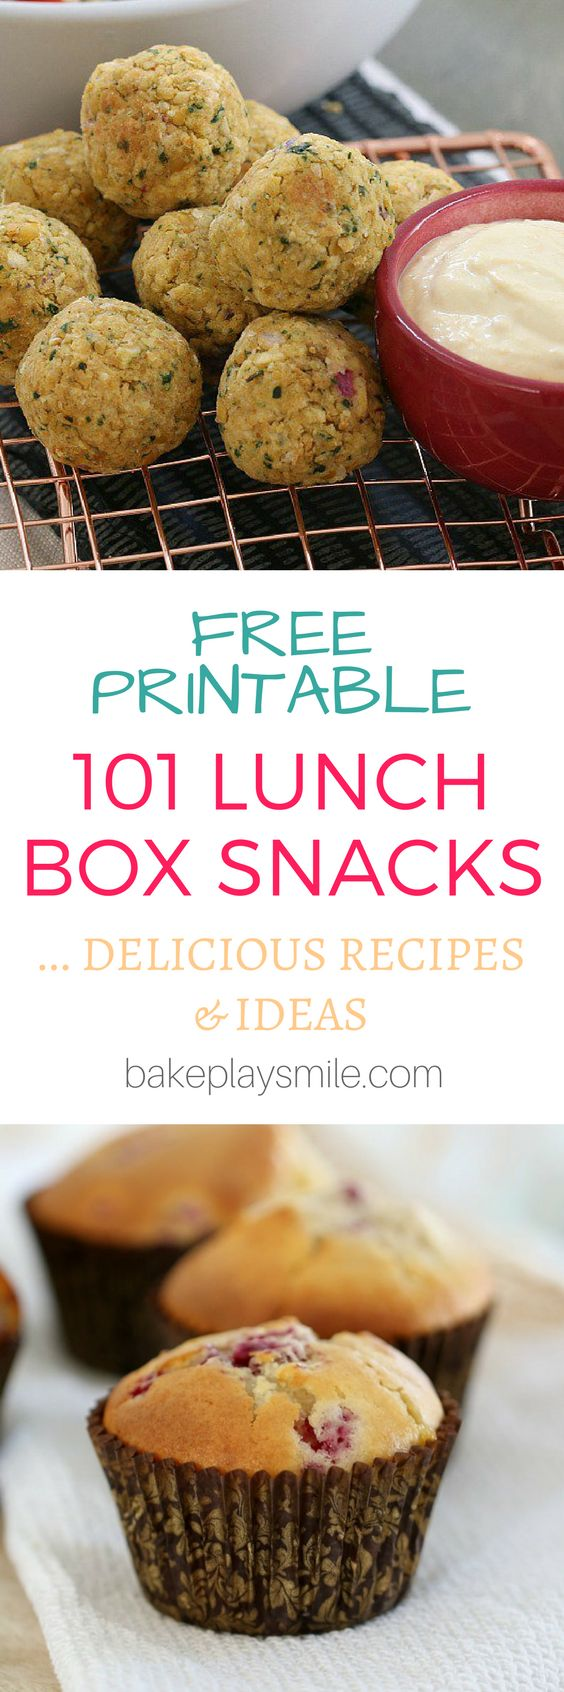 101 lunch box snacks and recipes… these are the very best of the best! Including 50 sweet recipes and 51 savoury recipes (and not a sandwich in sight!). And there's also a free printable to pop onto your kitchen fridge! #lunch #box #recipes #snacks #healthy #best #thermomix #conventional #easy #sweet #savoury